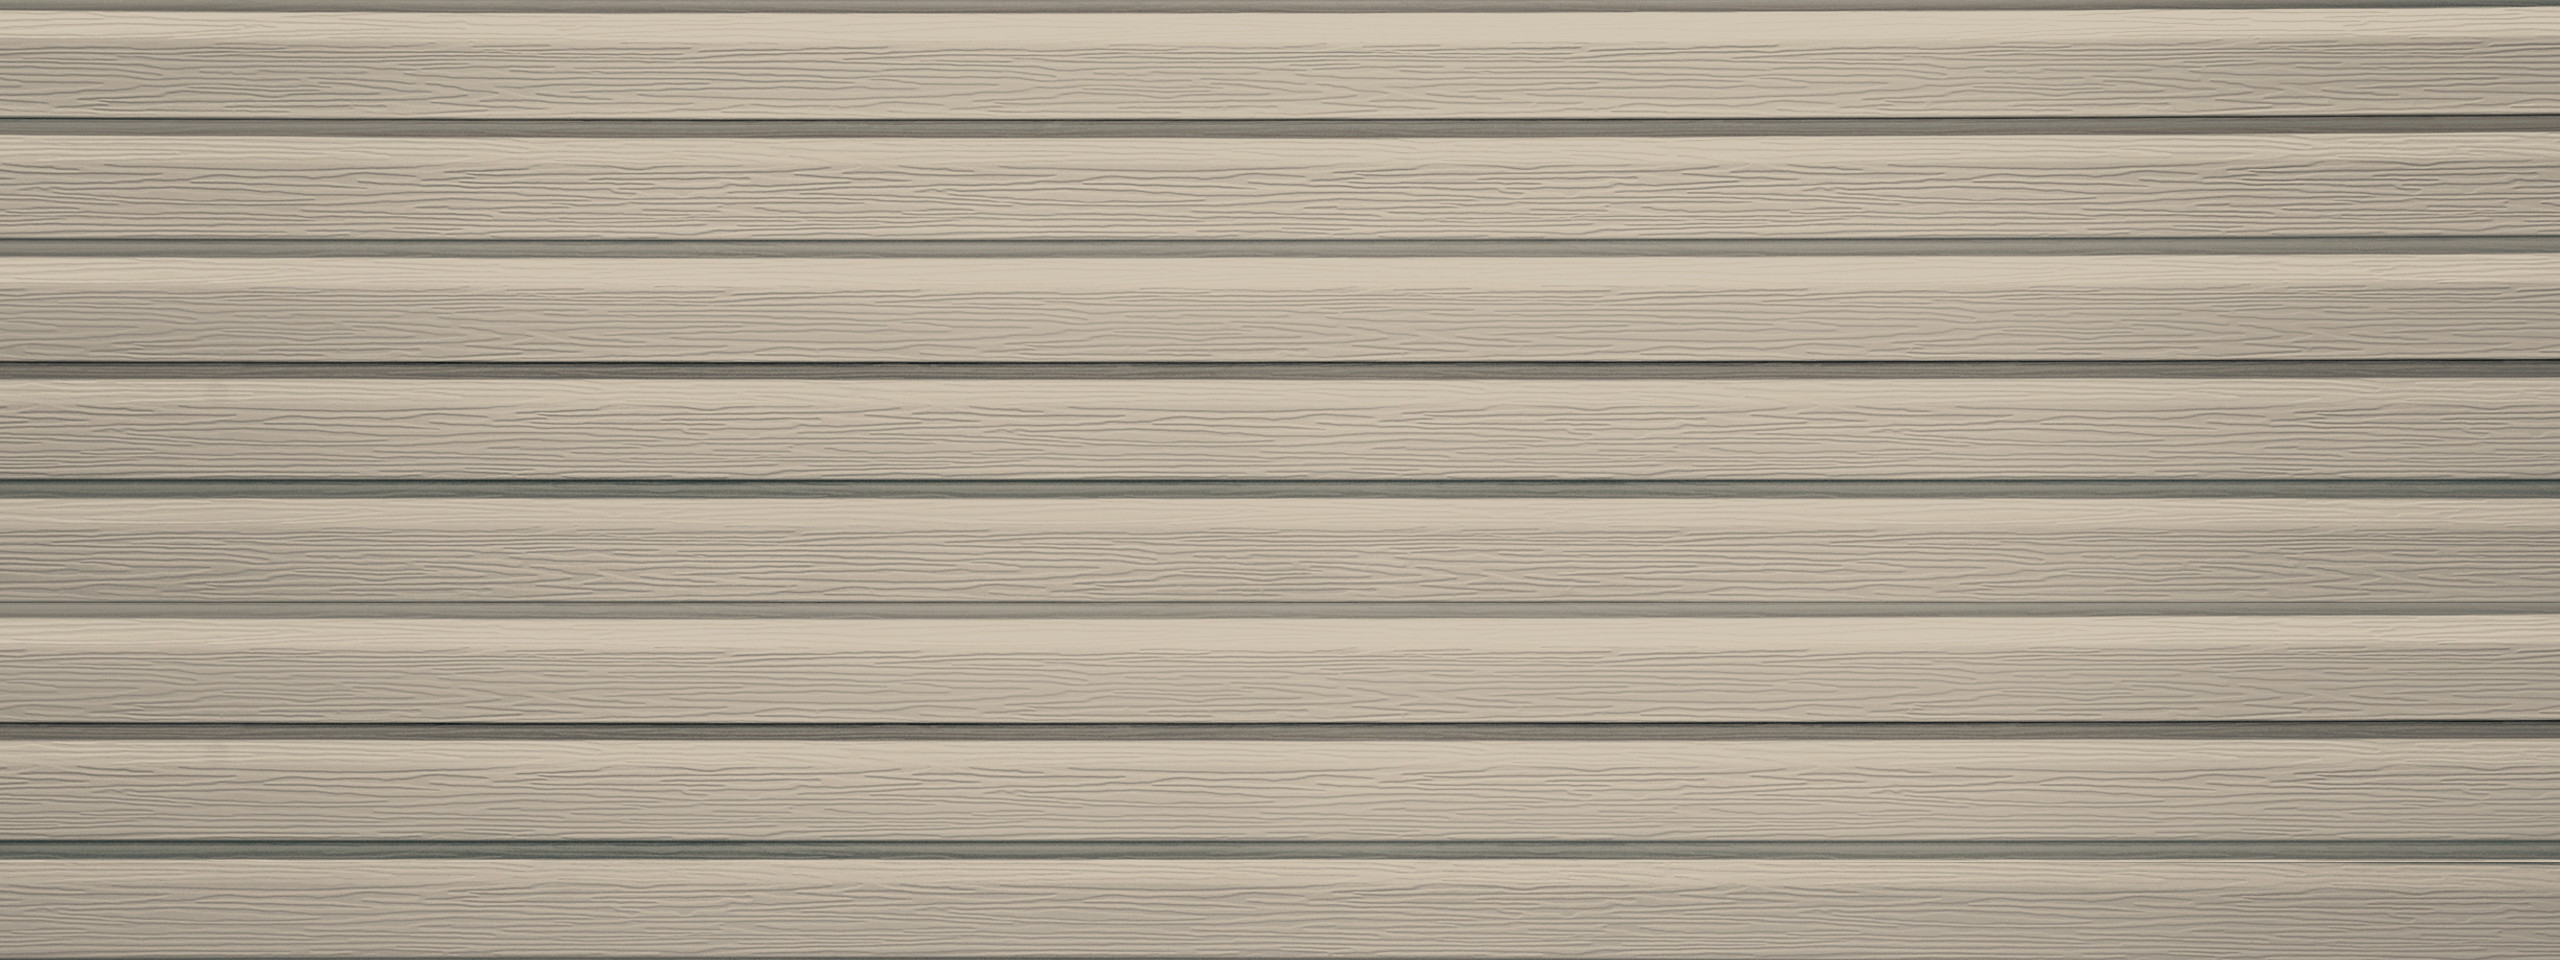 Entex dutchlap wickertone steel siding